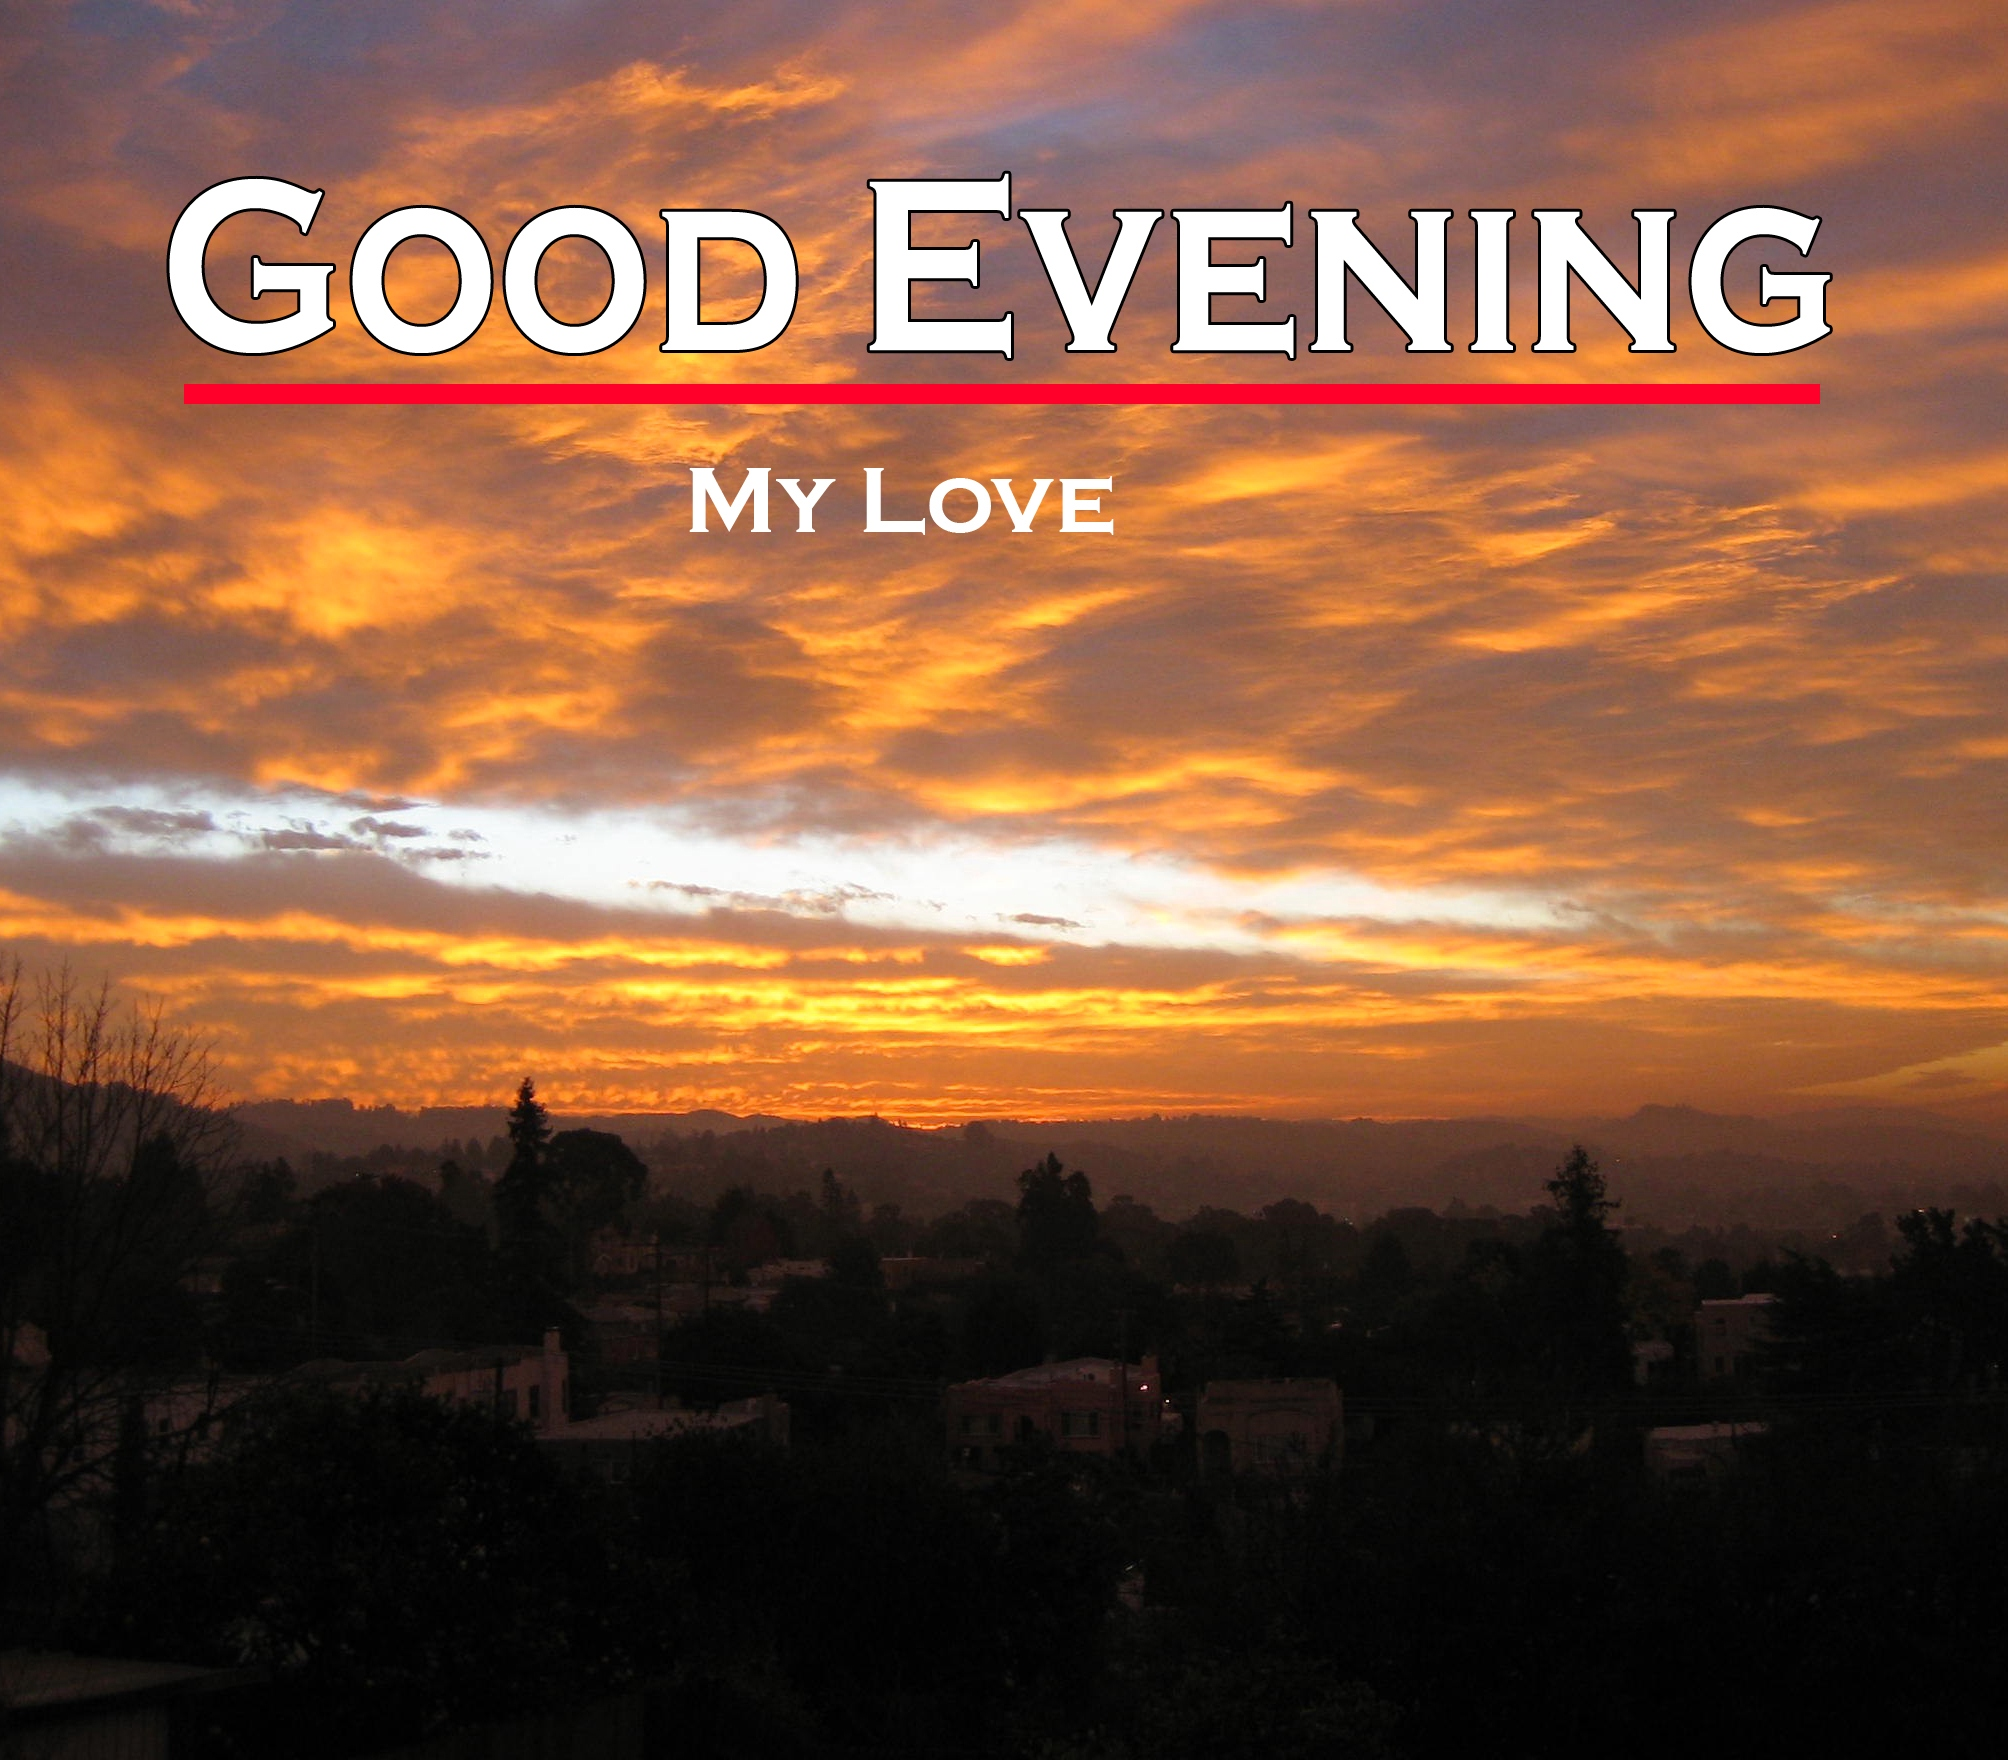 Good Evening Wishes Photo for Facebook